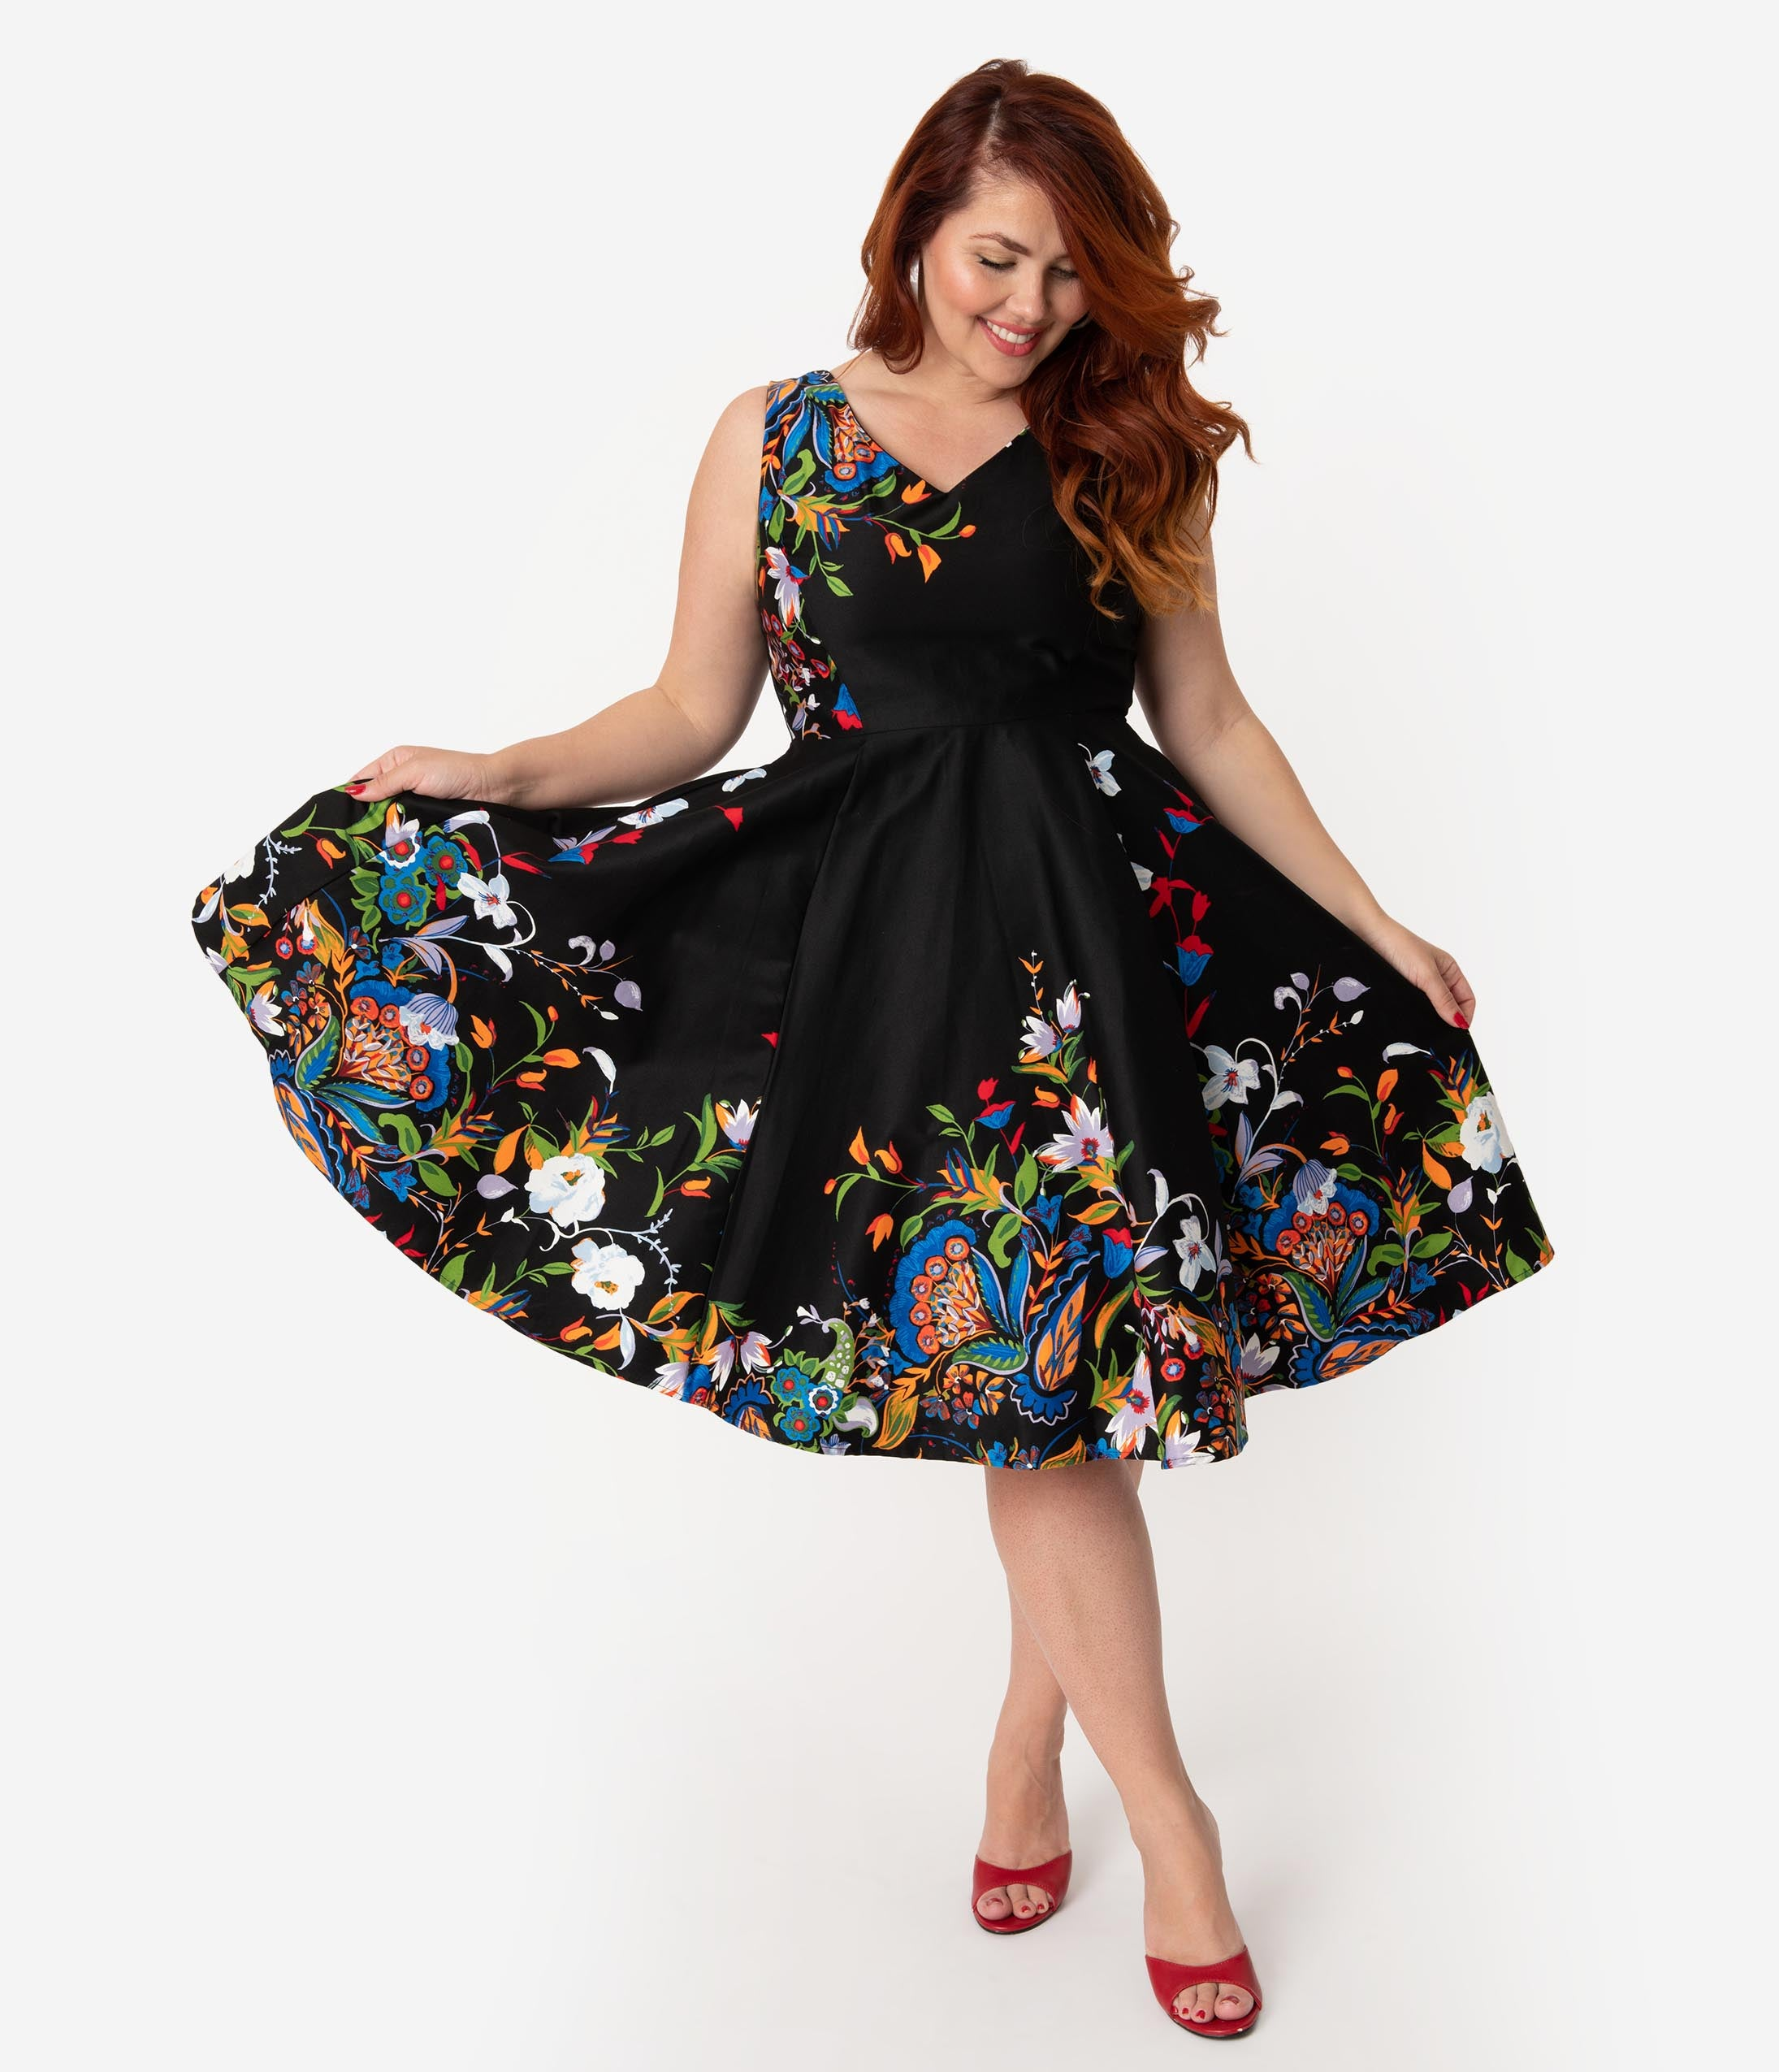 c4db27a766e0 Plus Size Black Border Floral Print Cotton Swing Dress